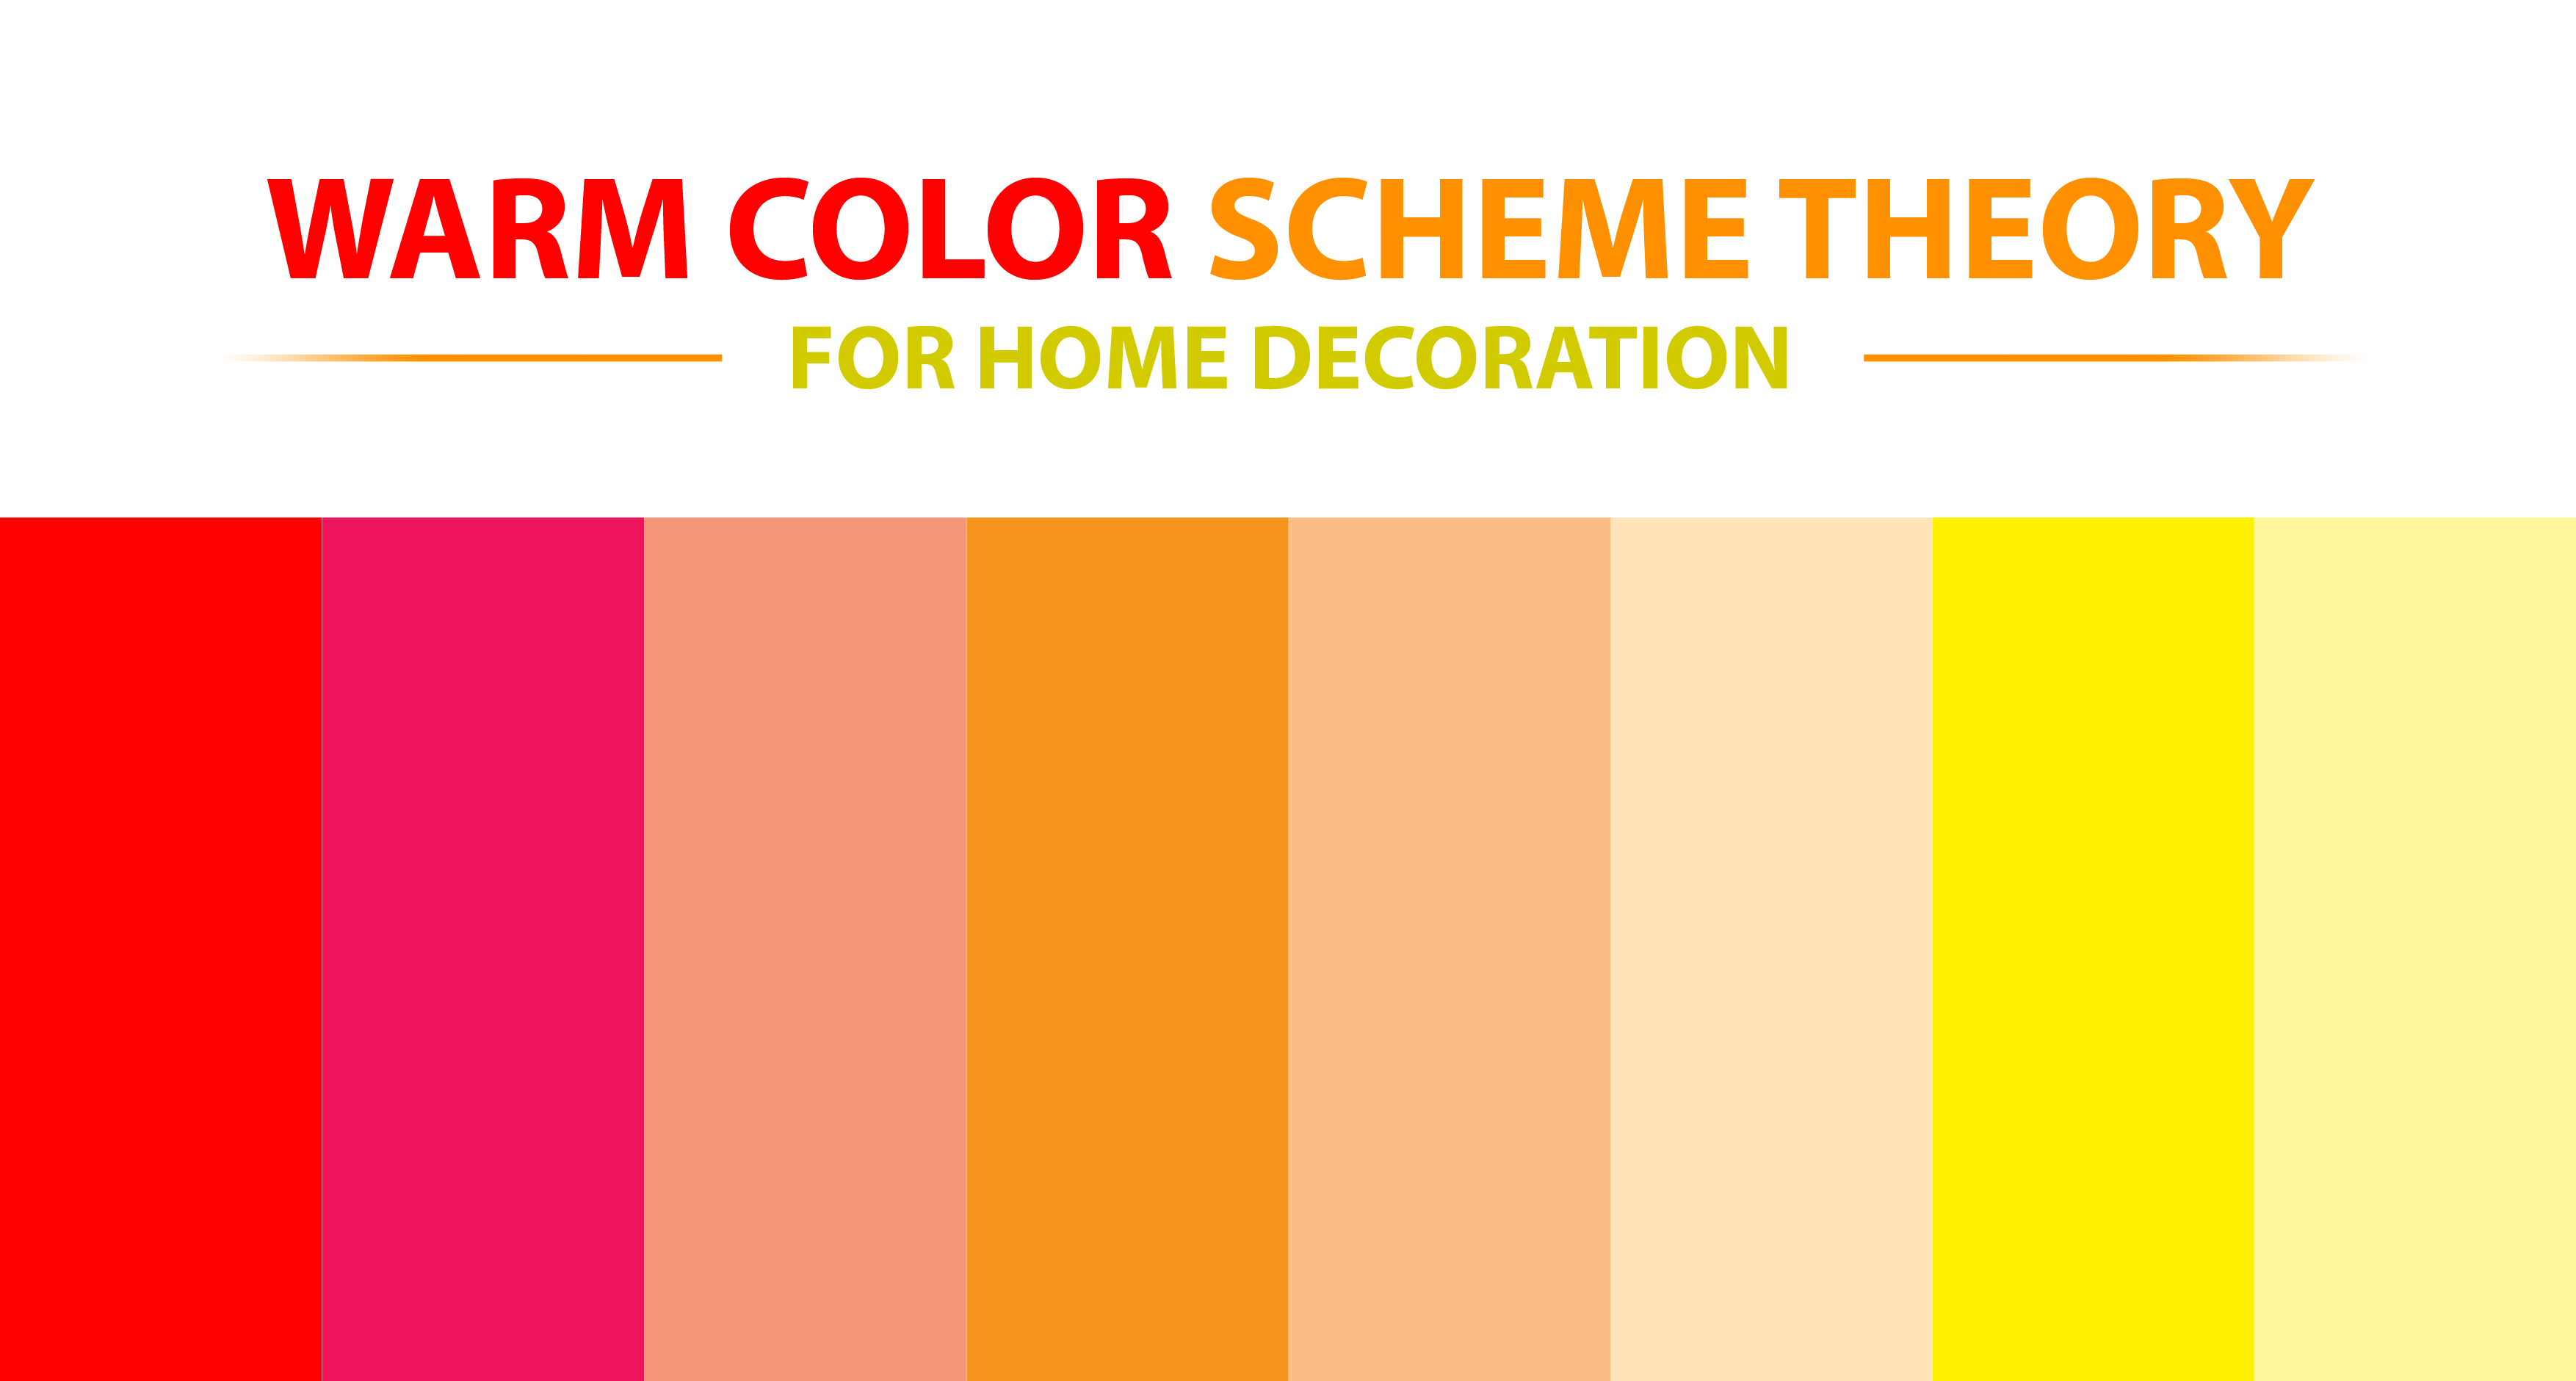 Warm Color Palette Endearing Warm Color Scheme Theory For Home Decoration  Roy Home Design Review